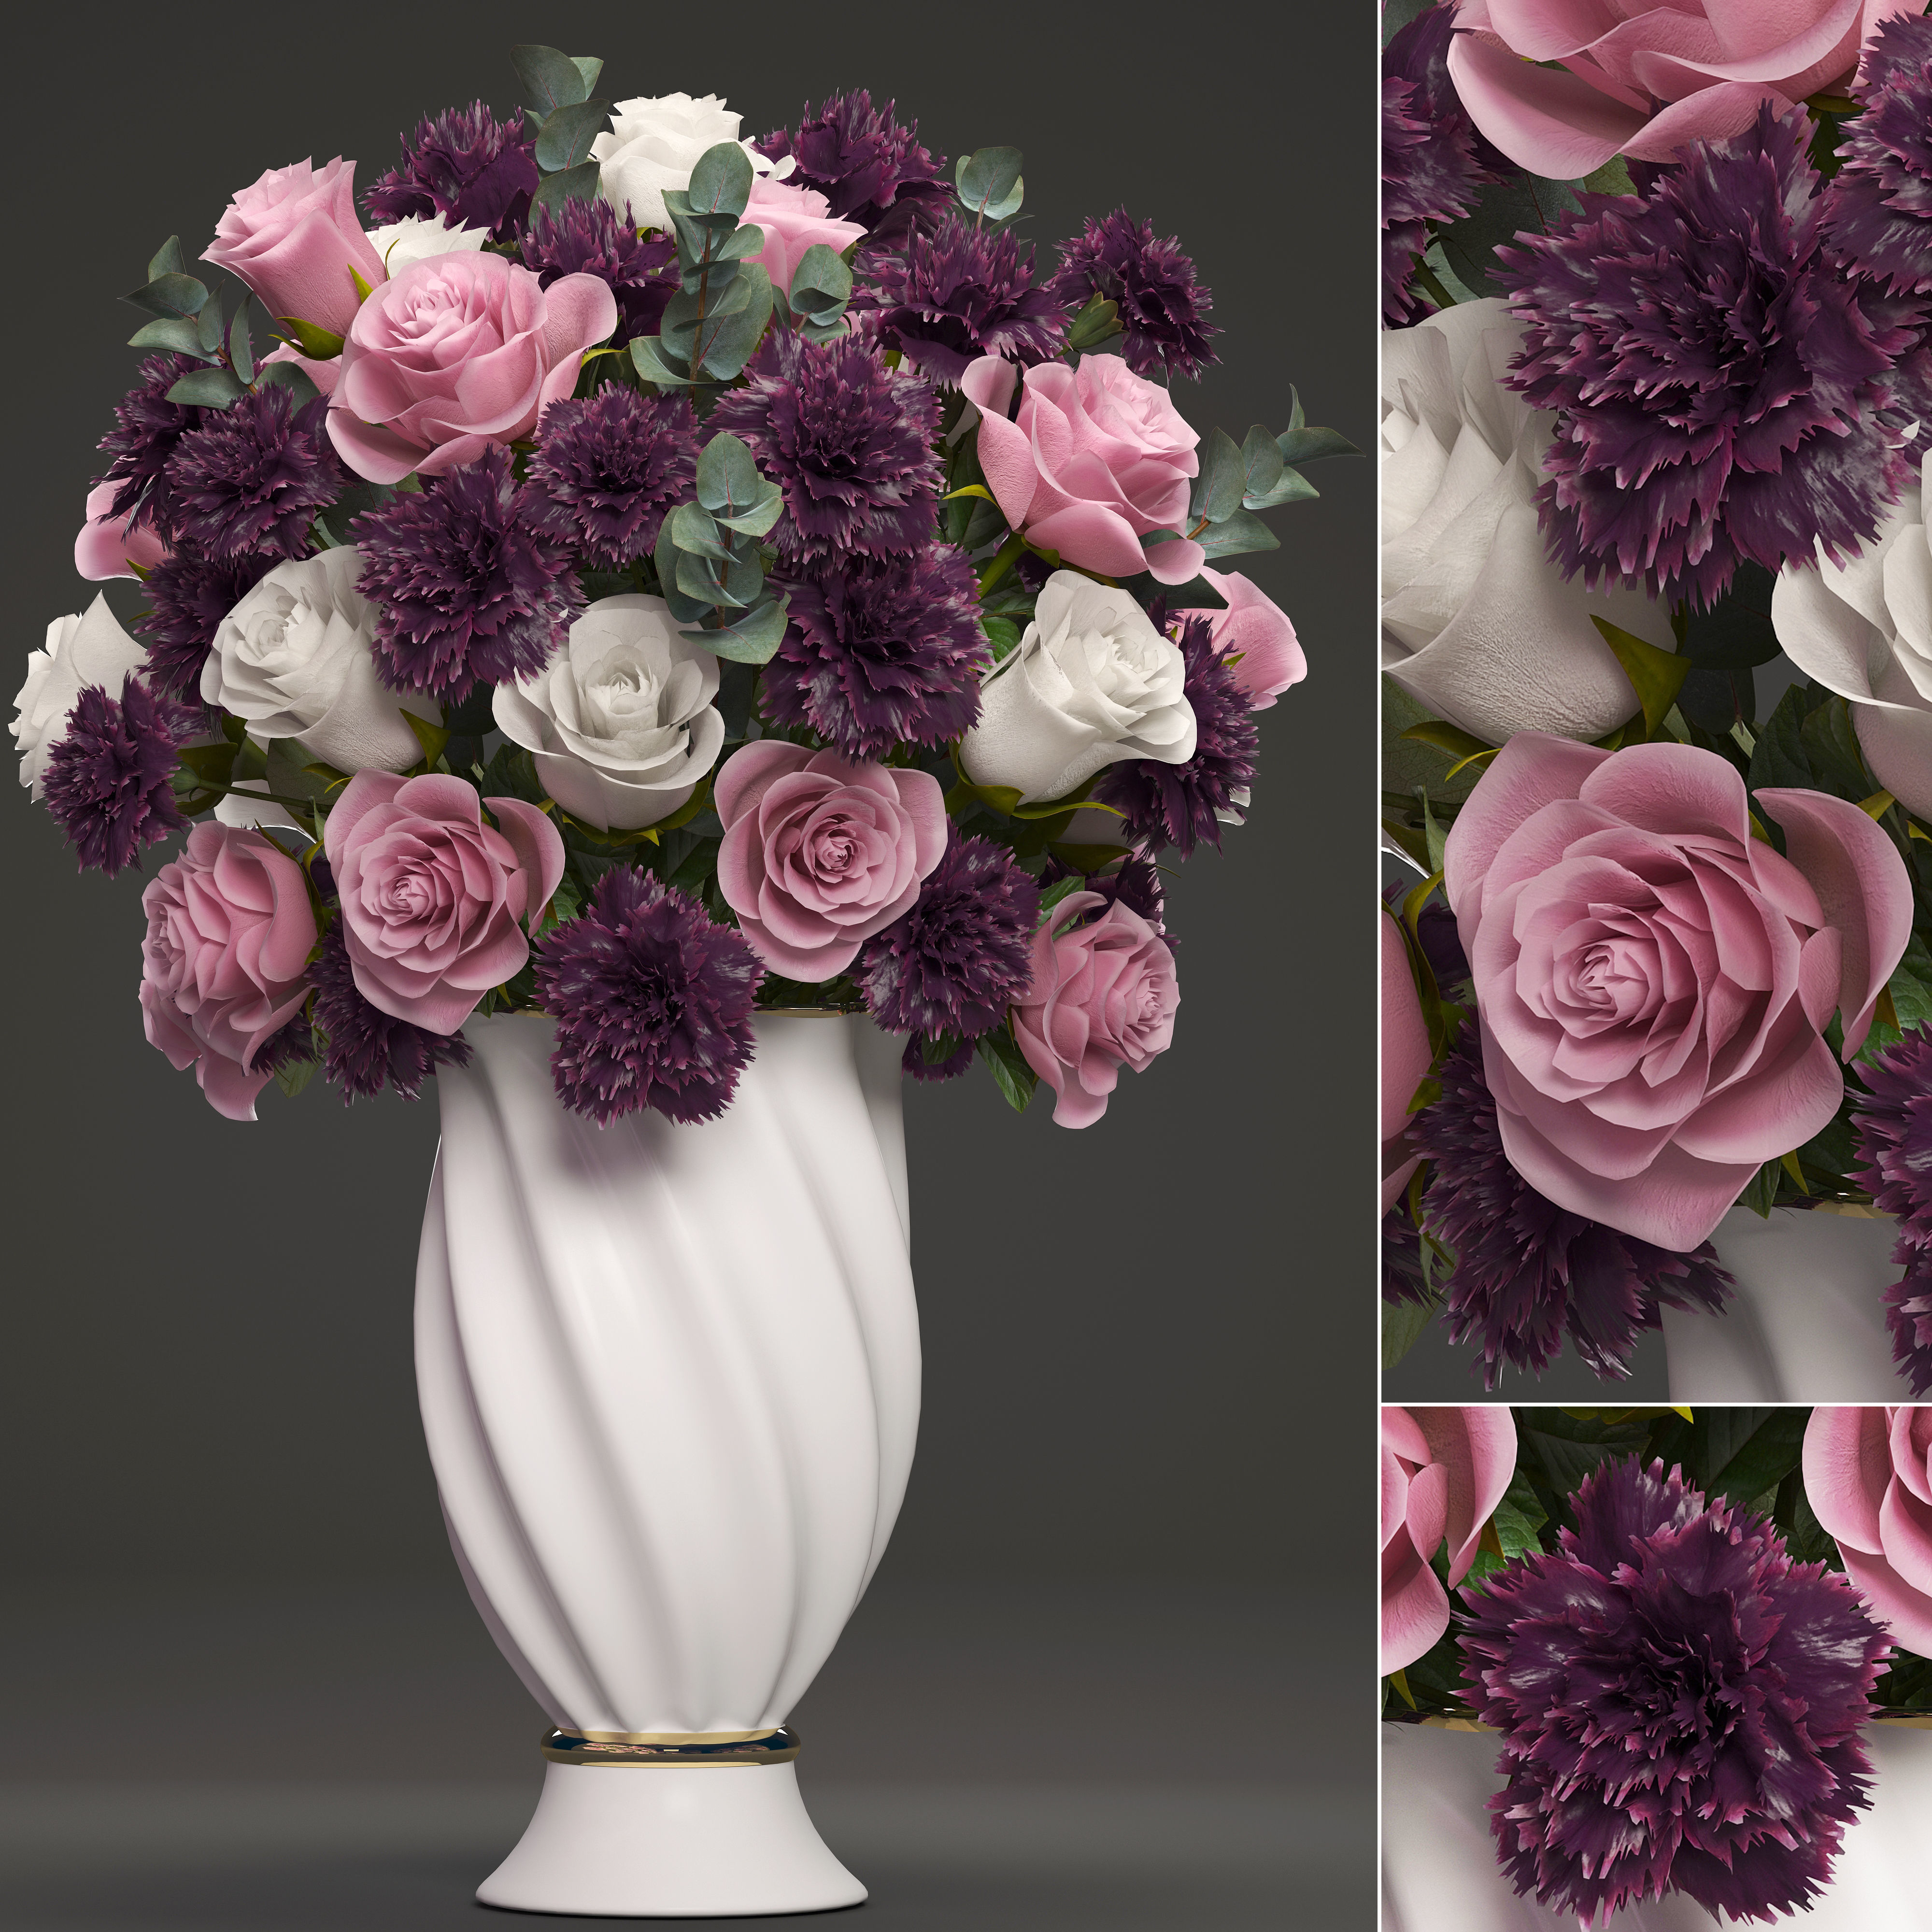 Bouquet of flowers in a vase 3D model & Bouquet of flowers in a vase 3D | CGTrader